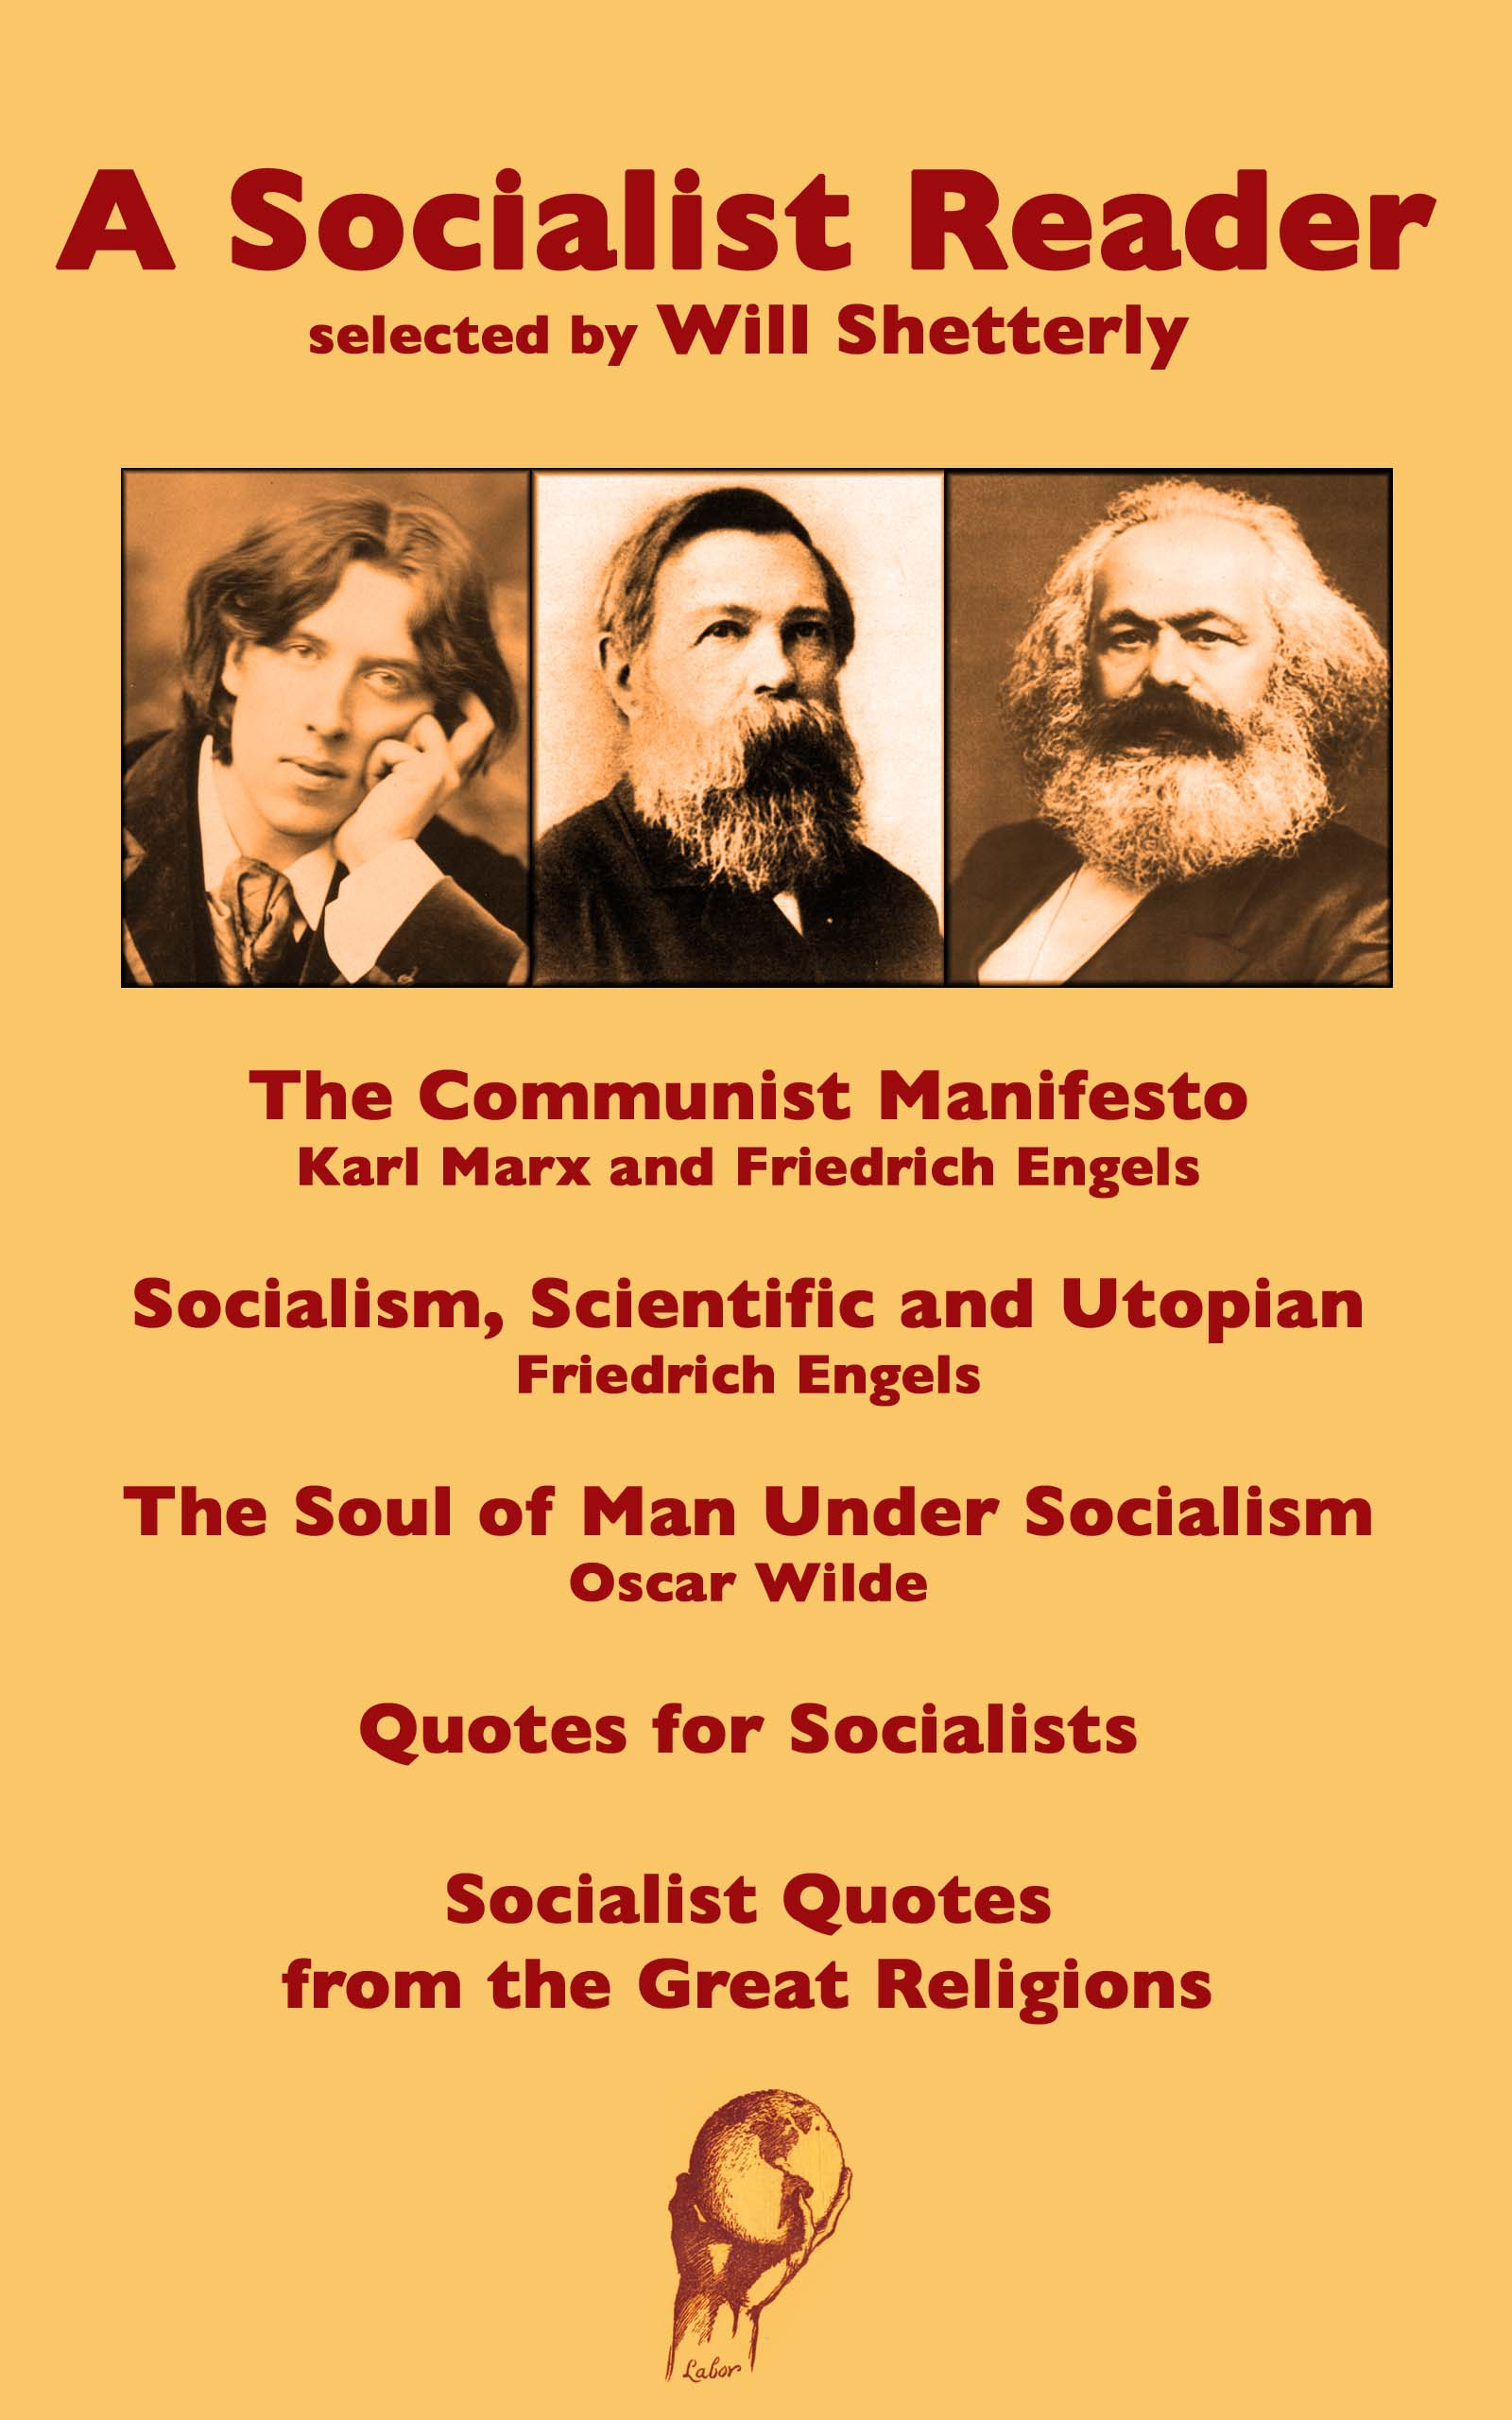 an analysis of a writing on estranged labour by karl marx